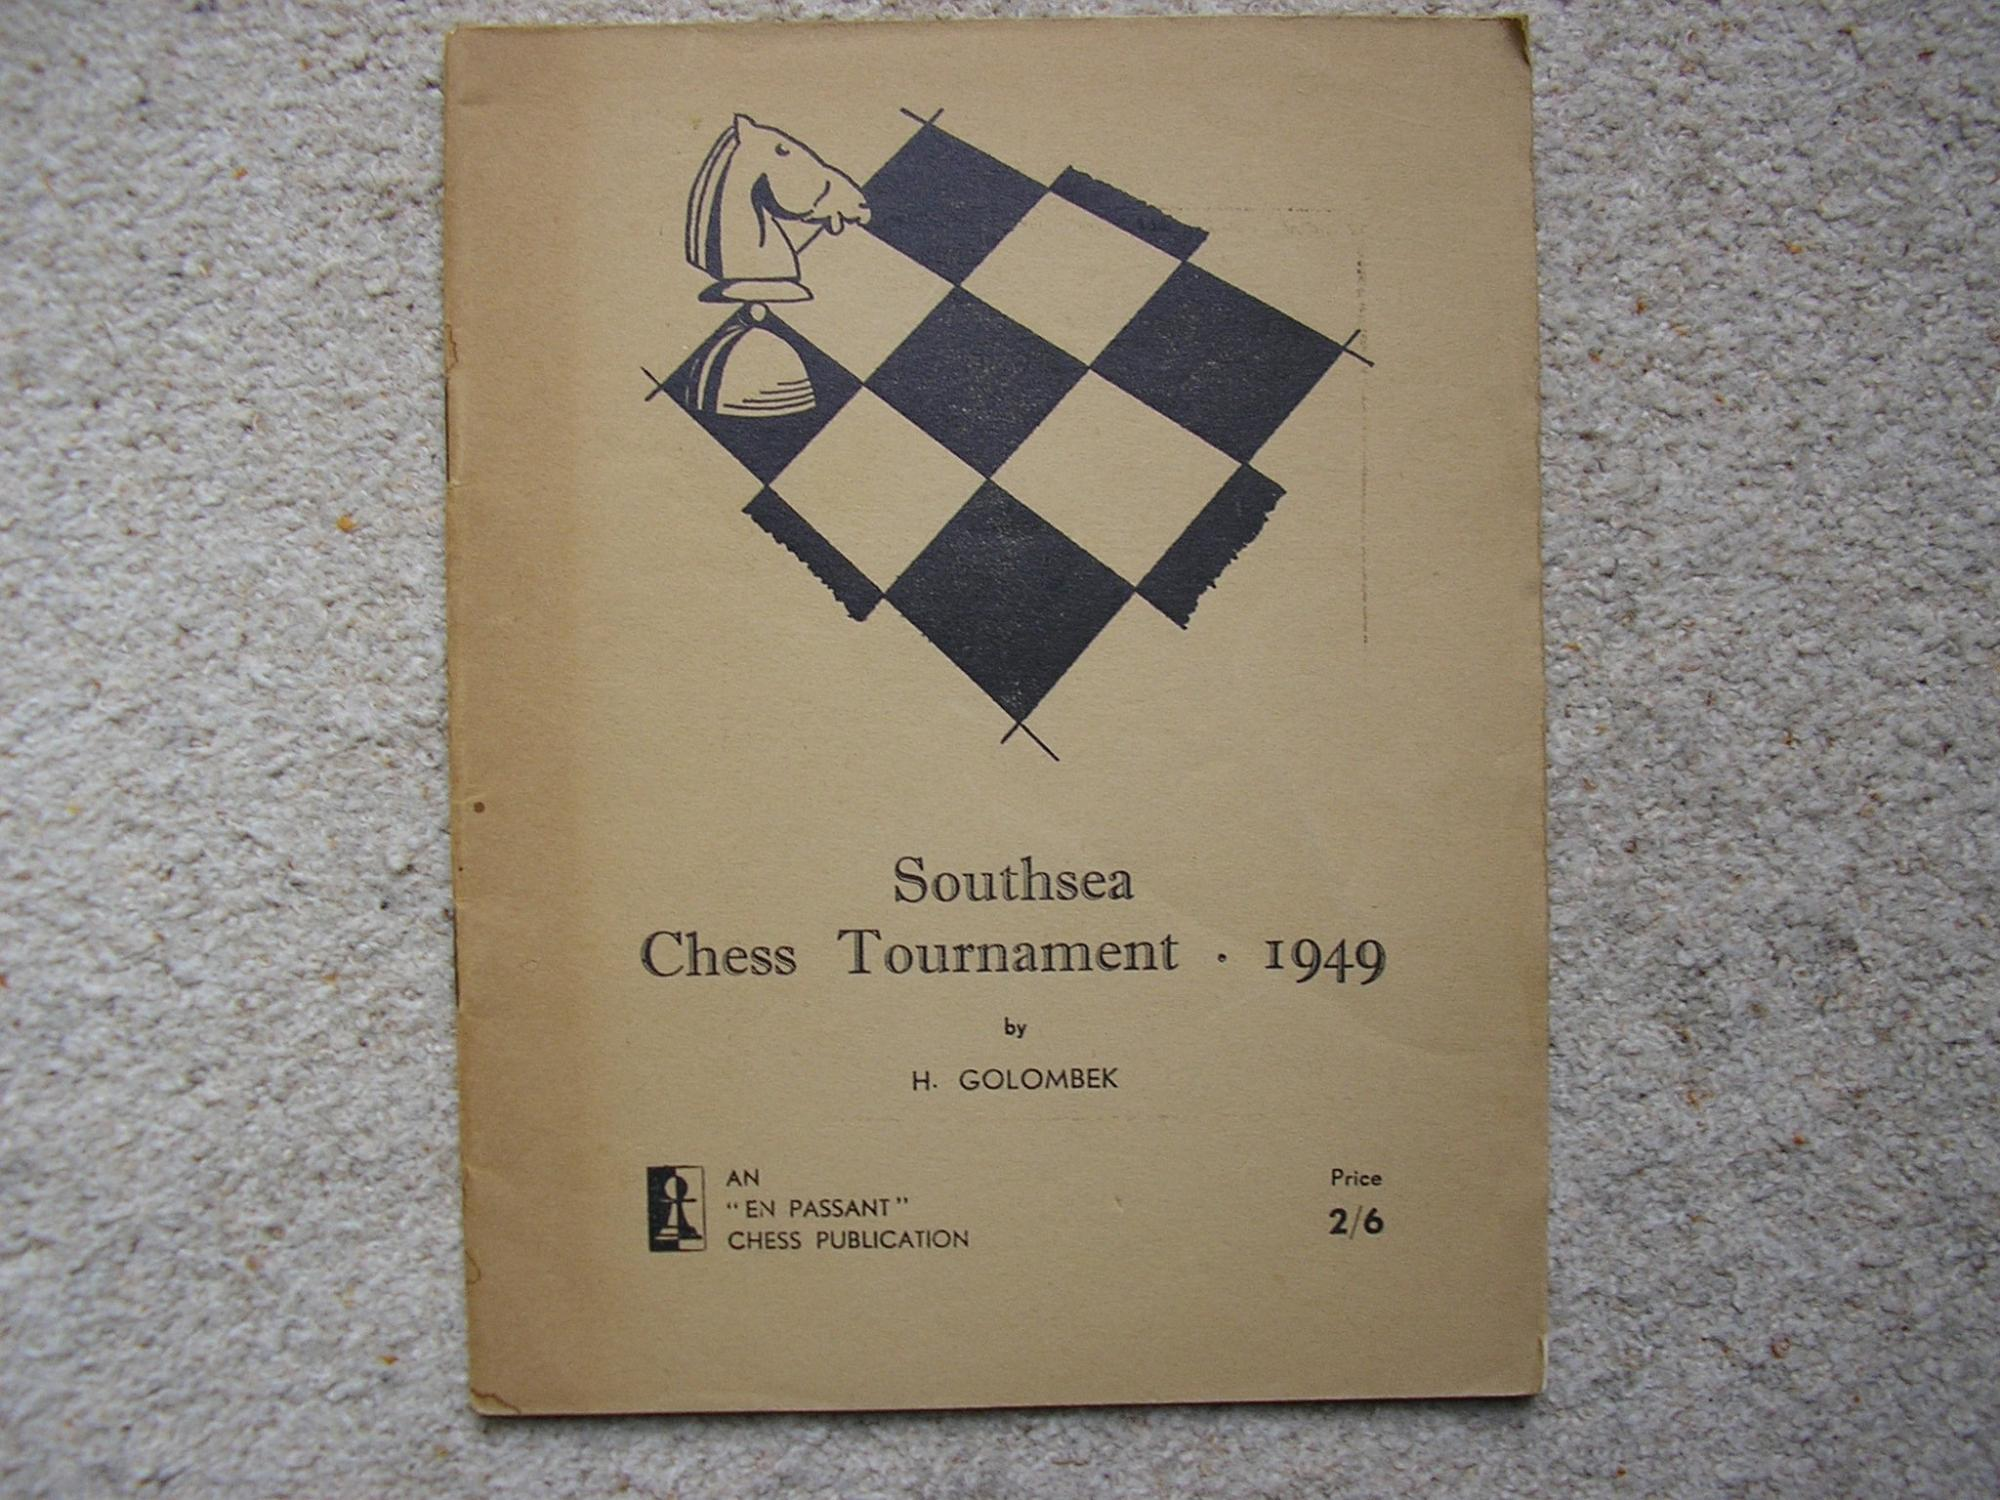 Southsea Chess Tournament, Harry Golombek, En Passant, 1949